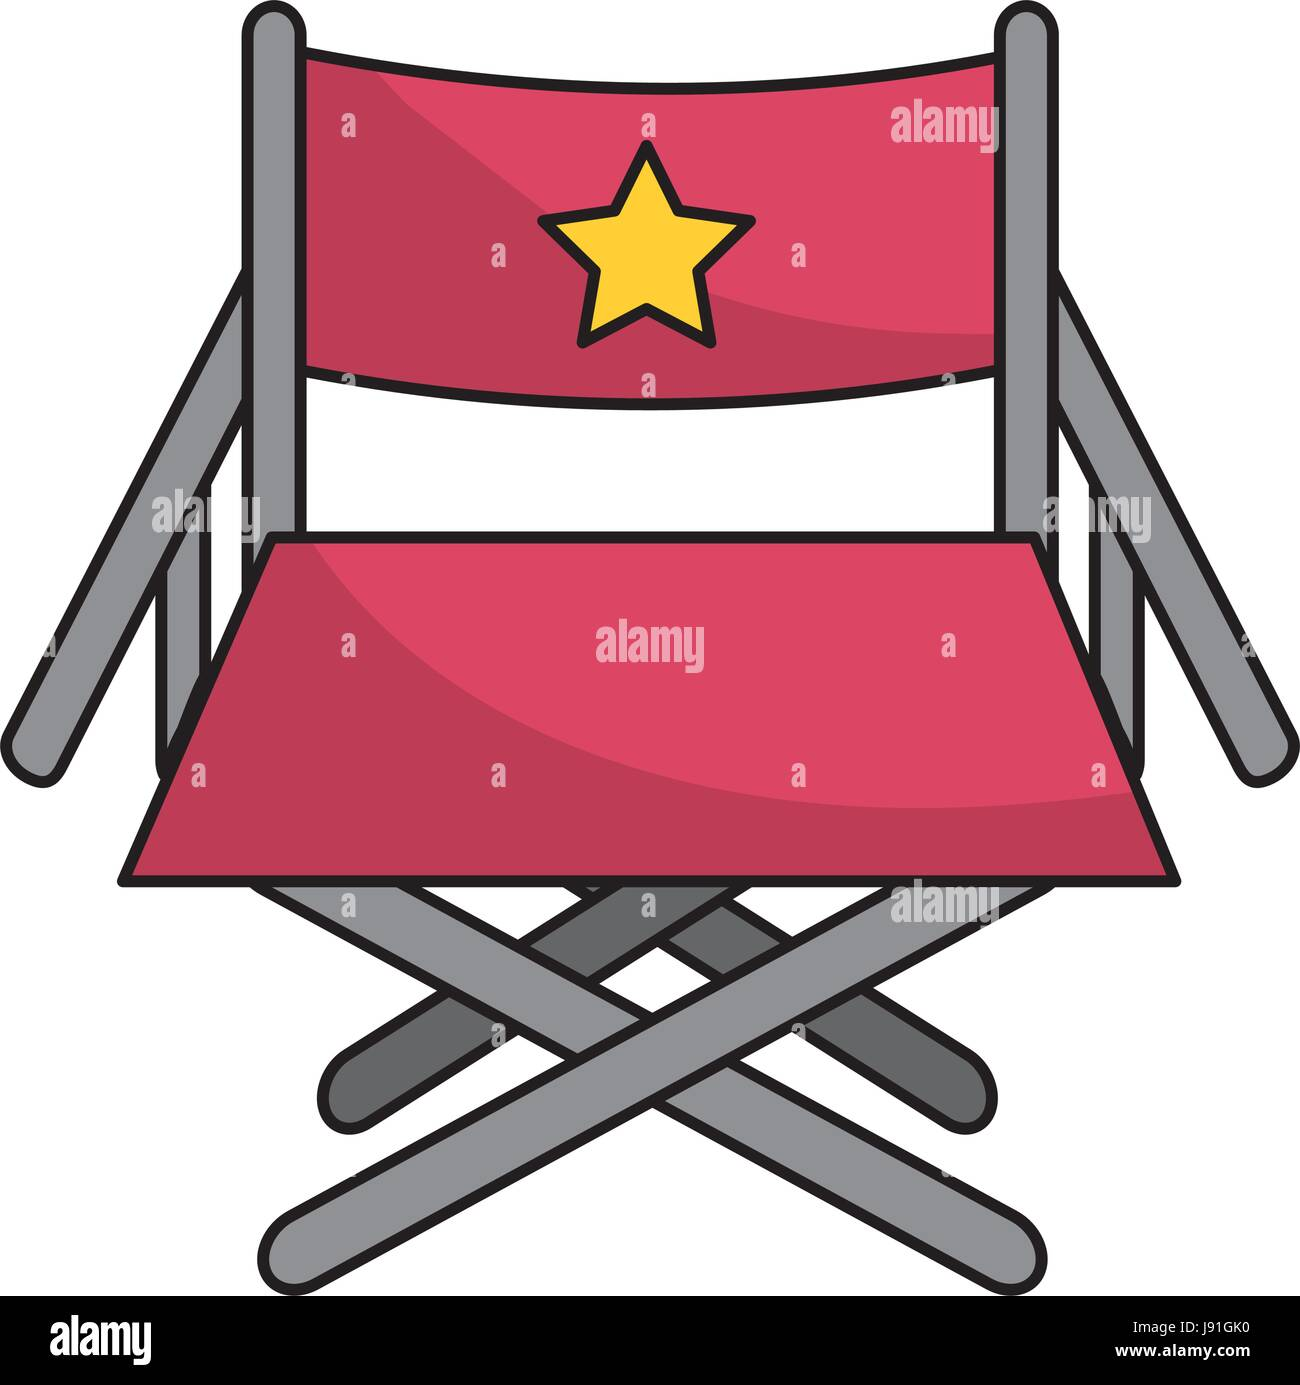 director seat to cinematography production - Stock Image